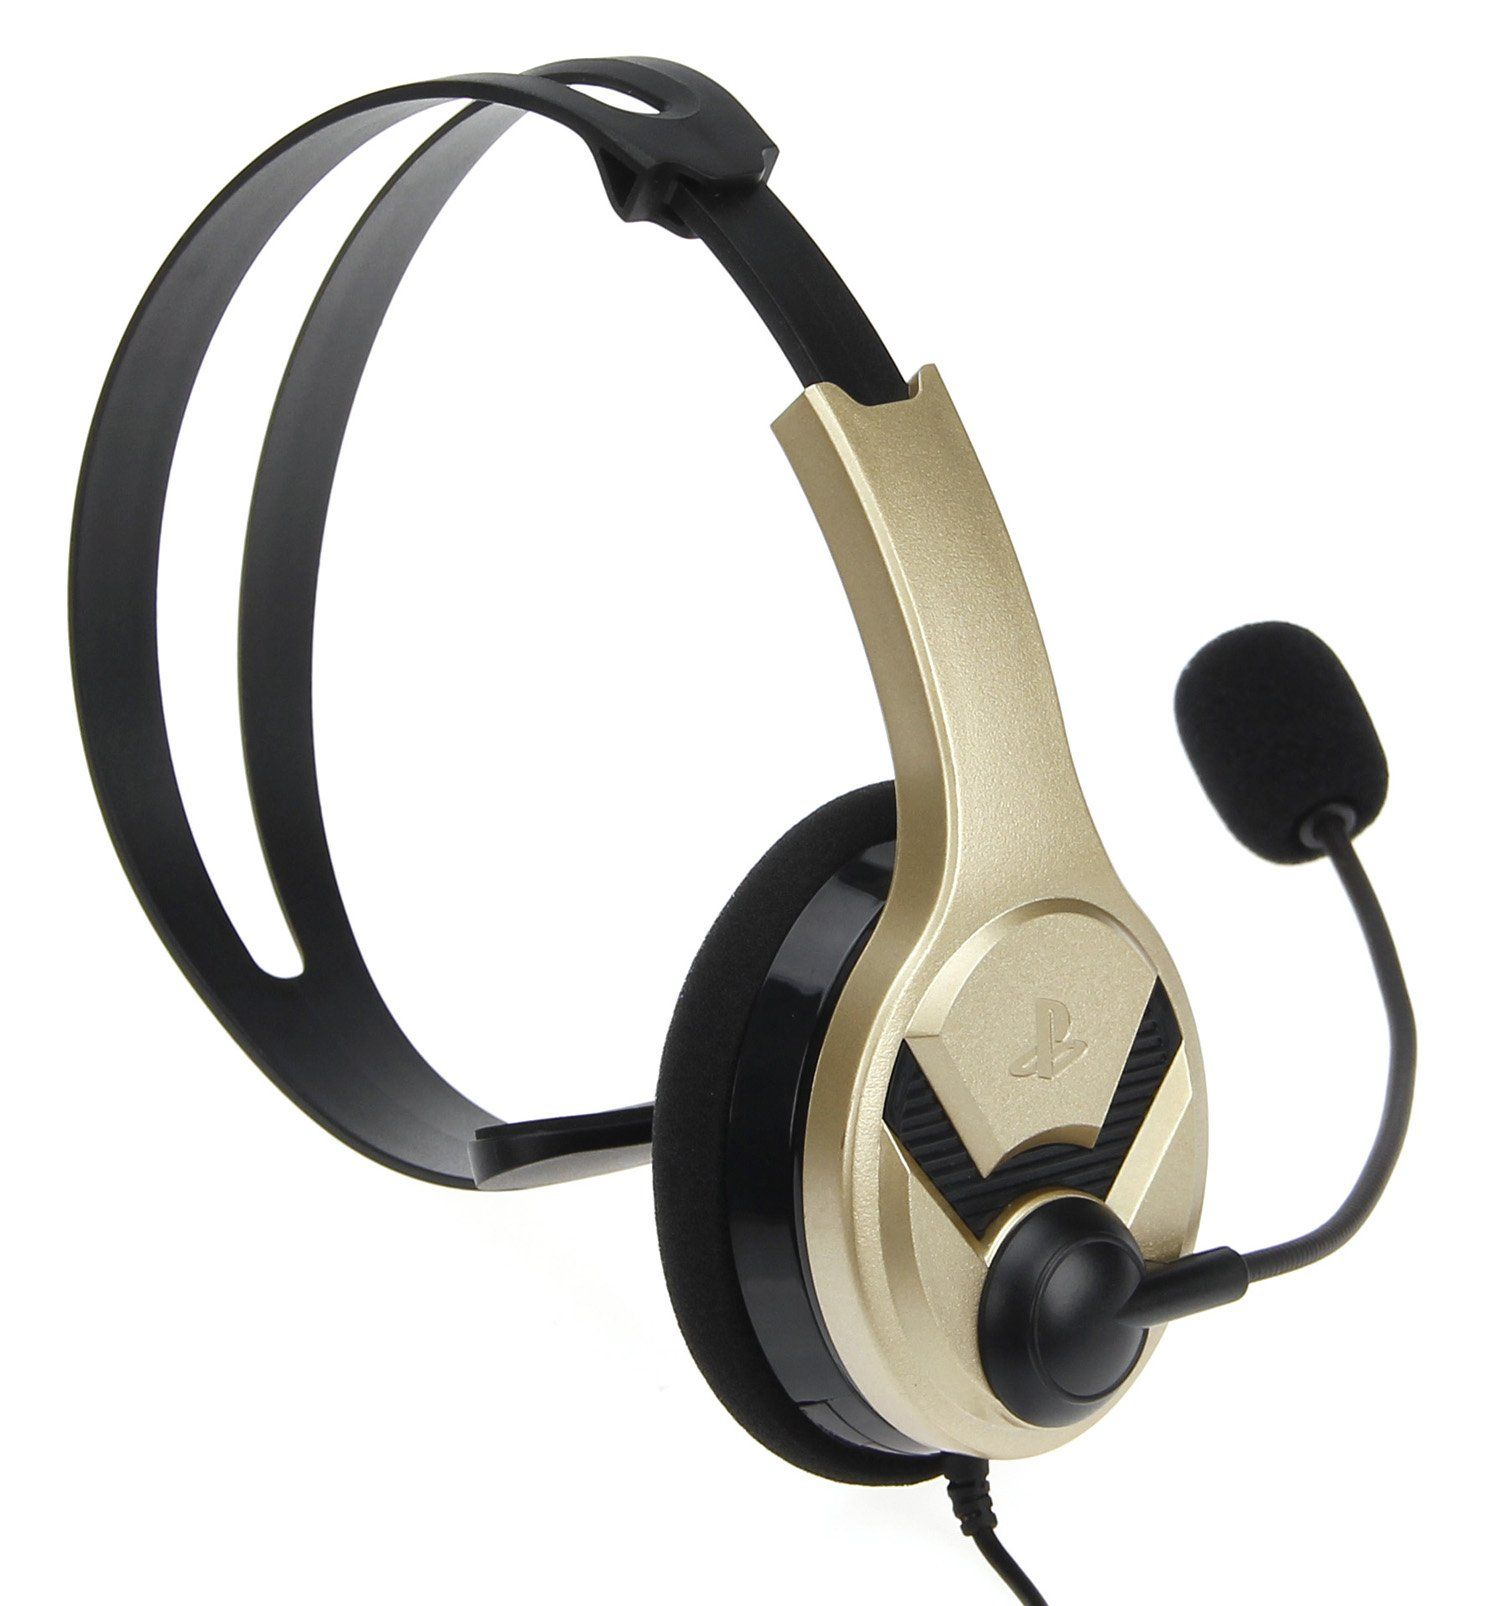 AmazonBasics Chat Headset for PlayStation 4 Officially